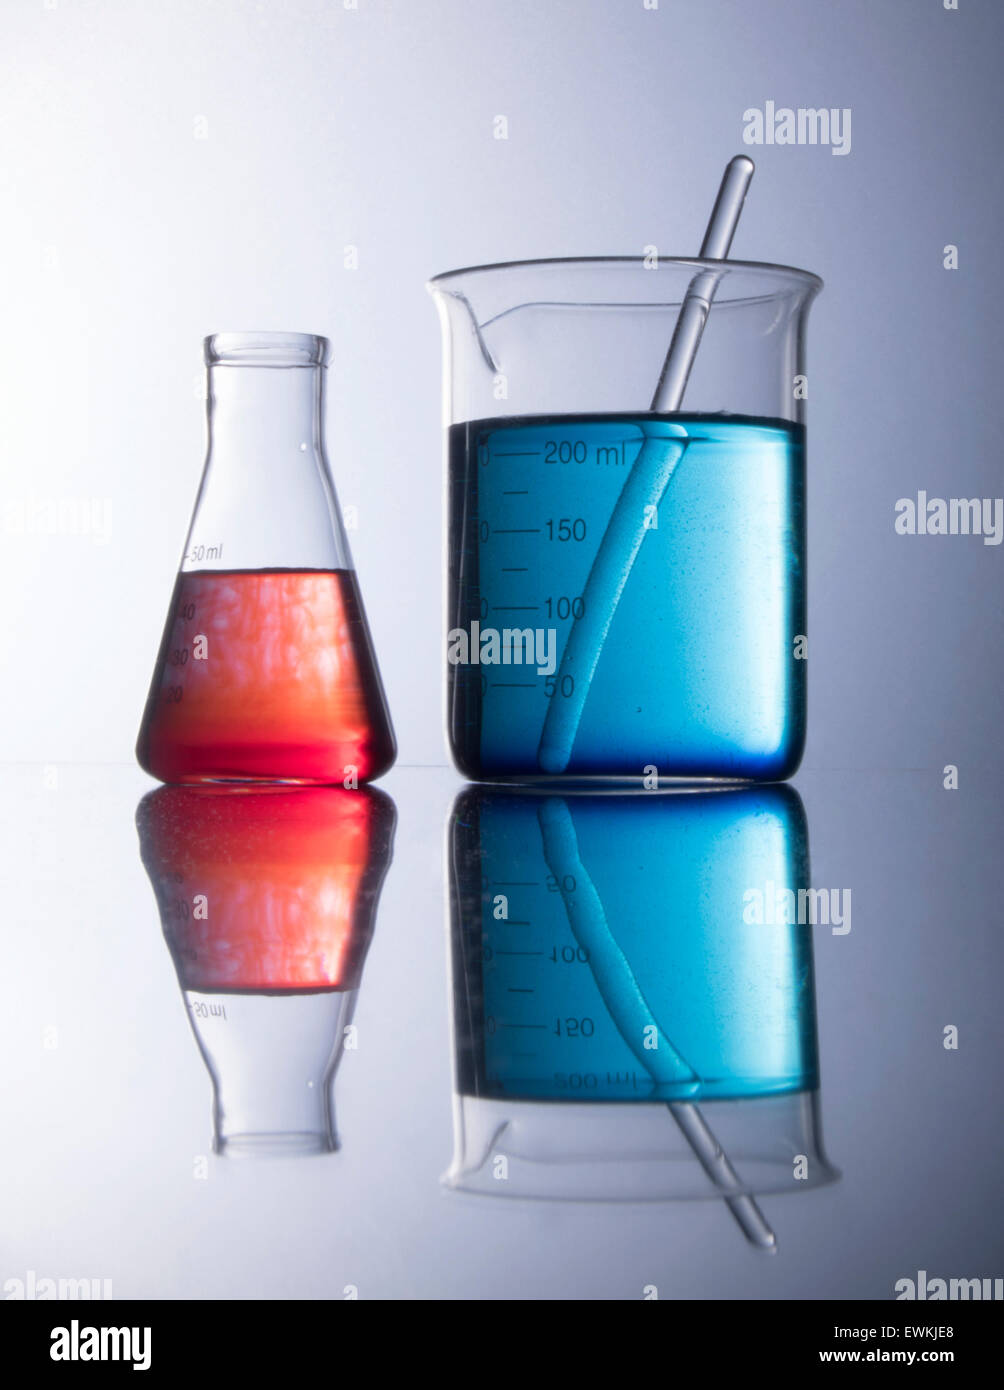 beakers with red and blue chemicals - Stock Image